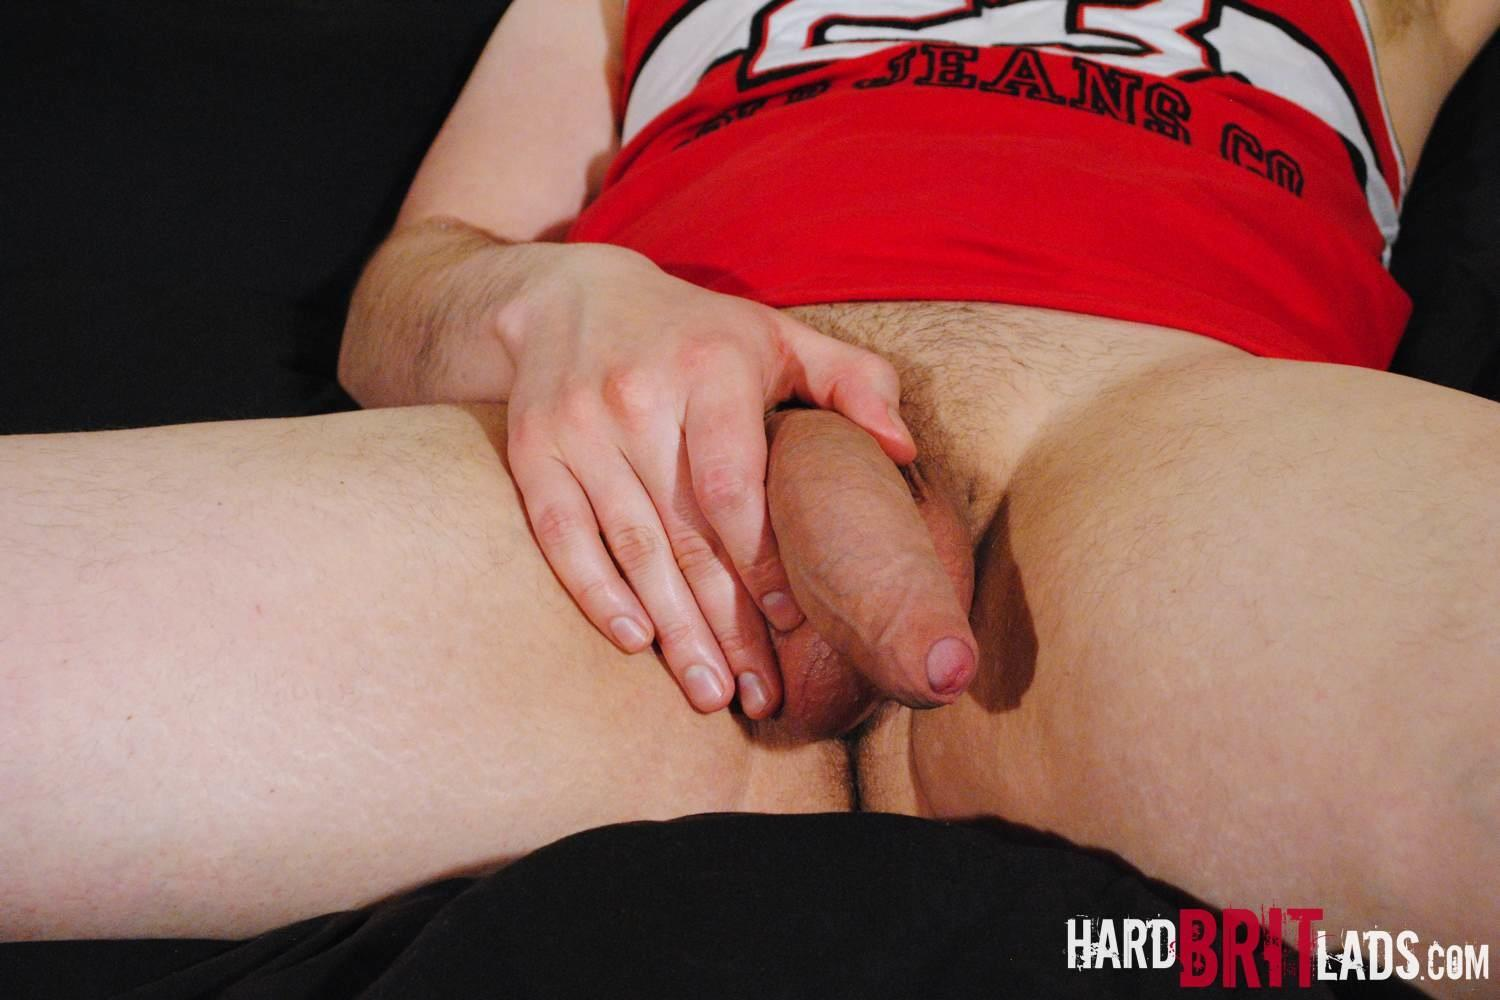 Hard Brit Lads Jon Bull British Skinhead With A Big Thick Uncut Cock Amateur Gay Porn 05 Straight British Skinhead Jerking His Big Thick Veiny Uncut Cock